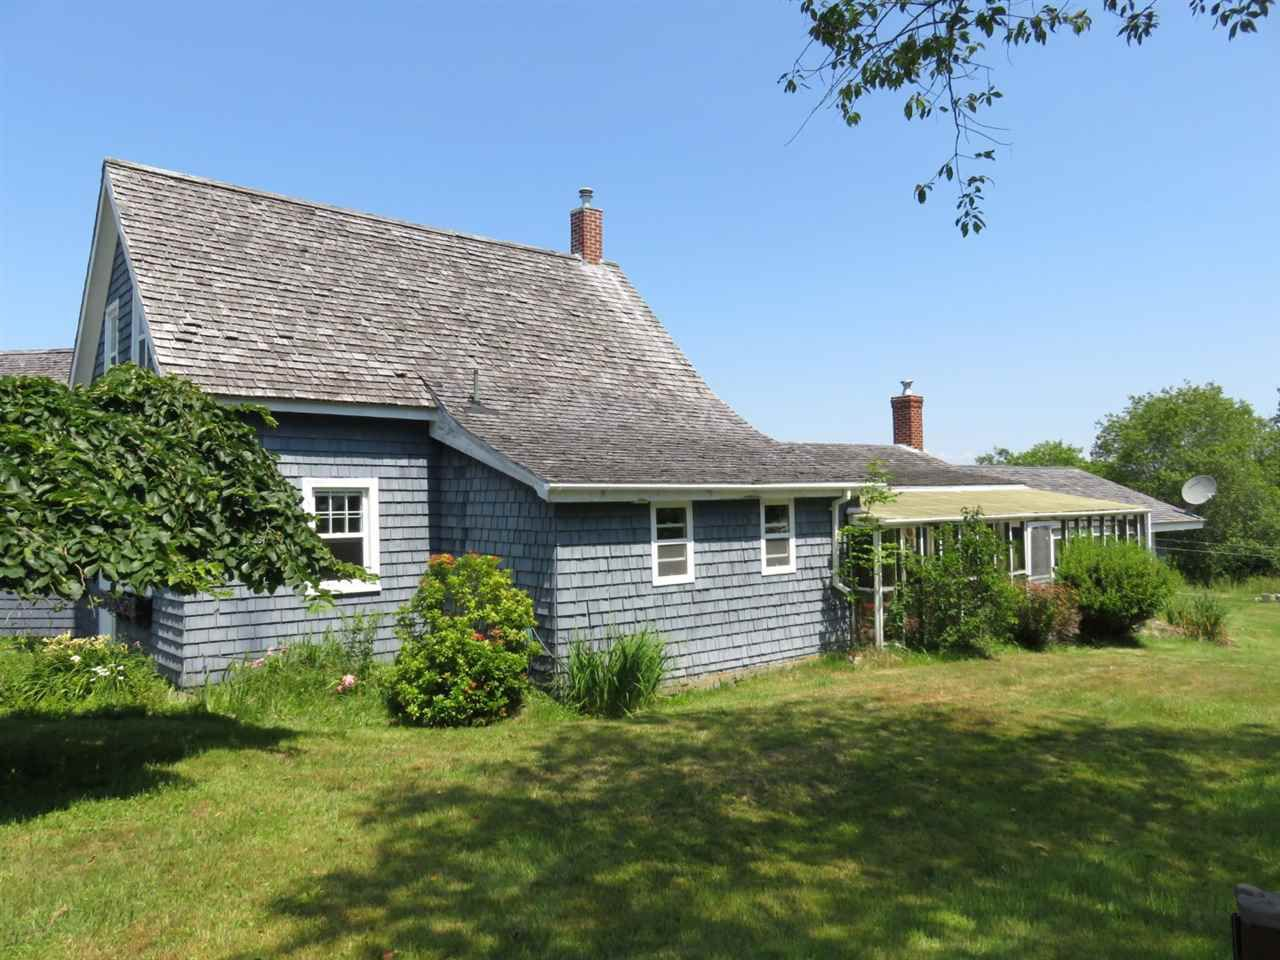 Photo 6: Photos: 5132 Sandy Point Road in Jordan Ferry: 407-Shelburne County Residential for sale (South Shore)  : MLS®# 201719775